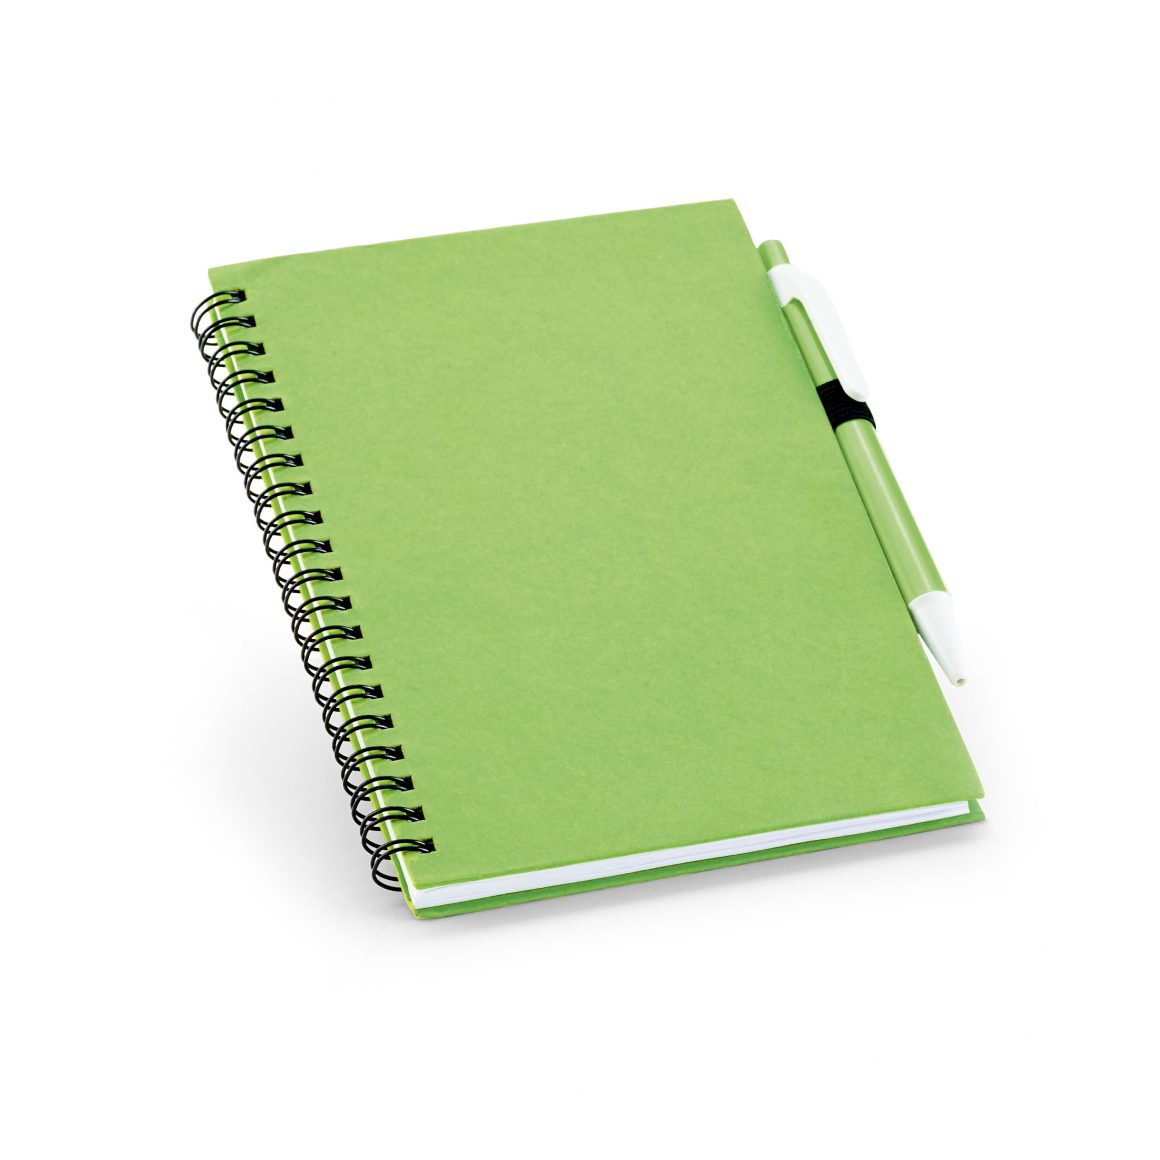 Trenalls Eco-friendly Notepad Product Code GP93482